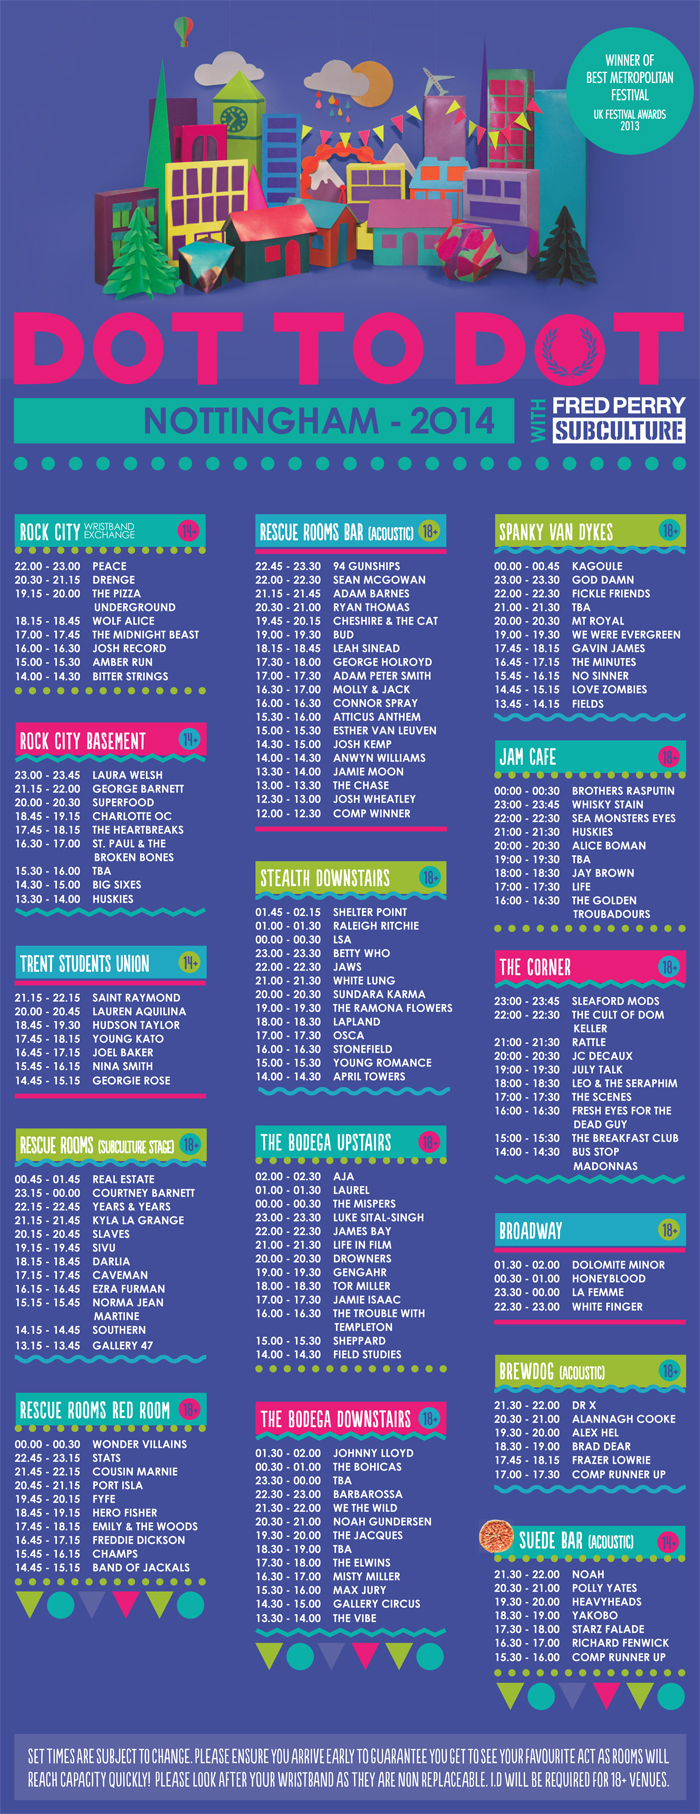 Dot To Dot set times poster